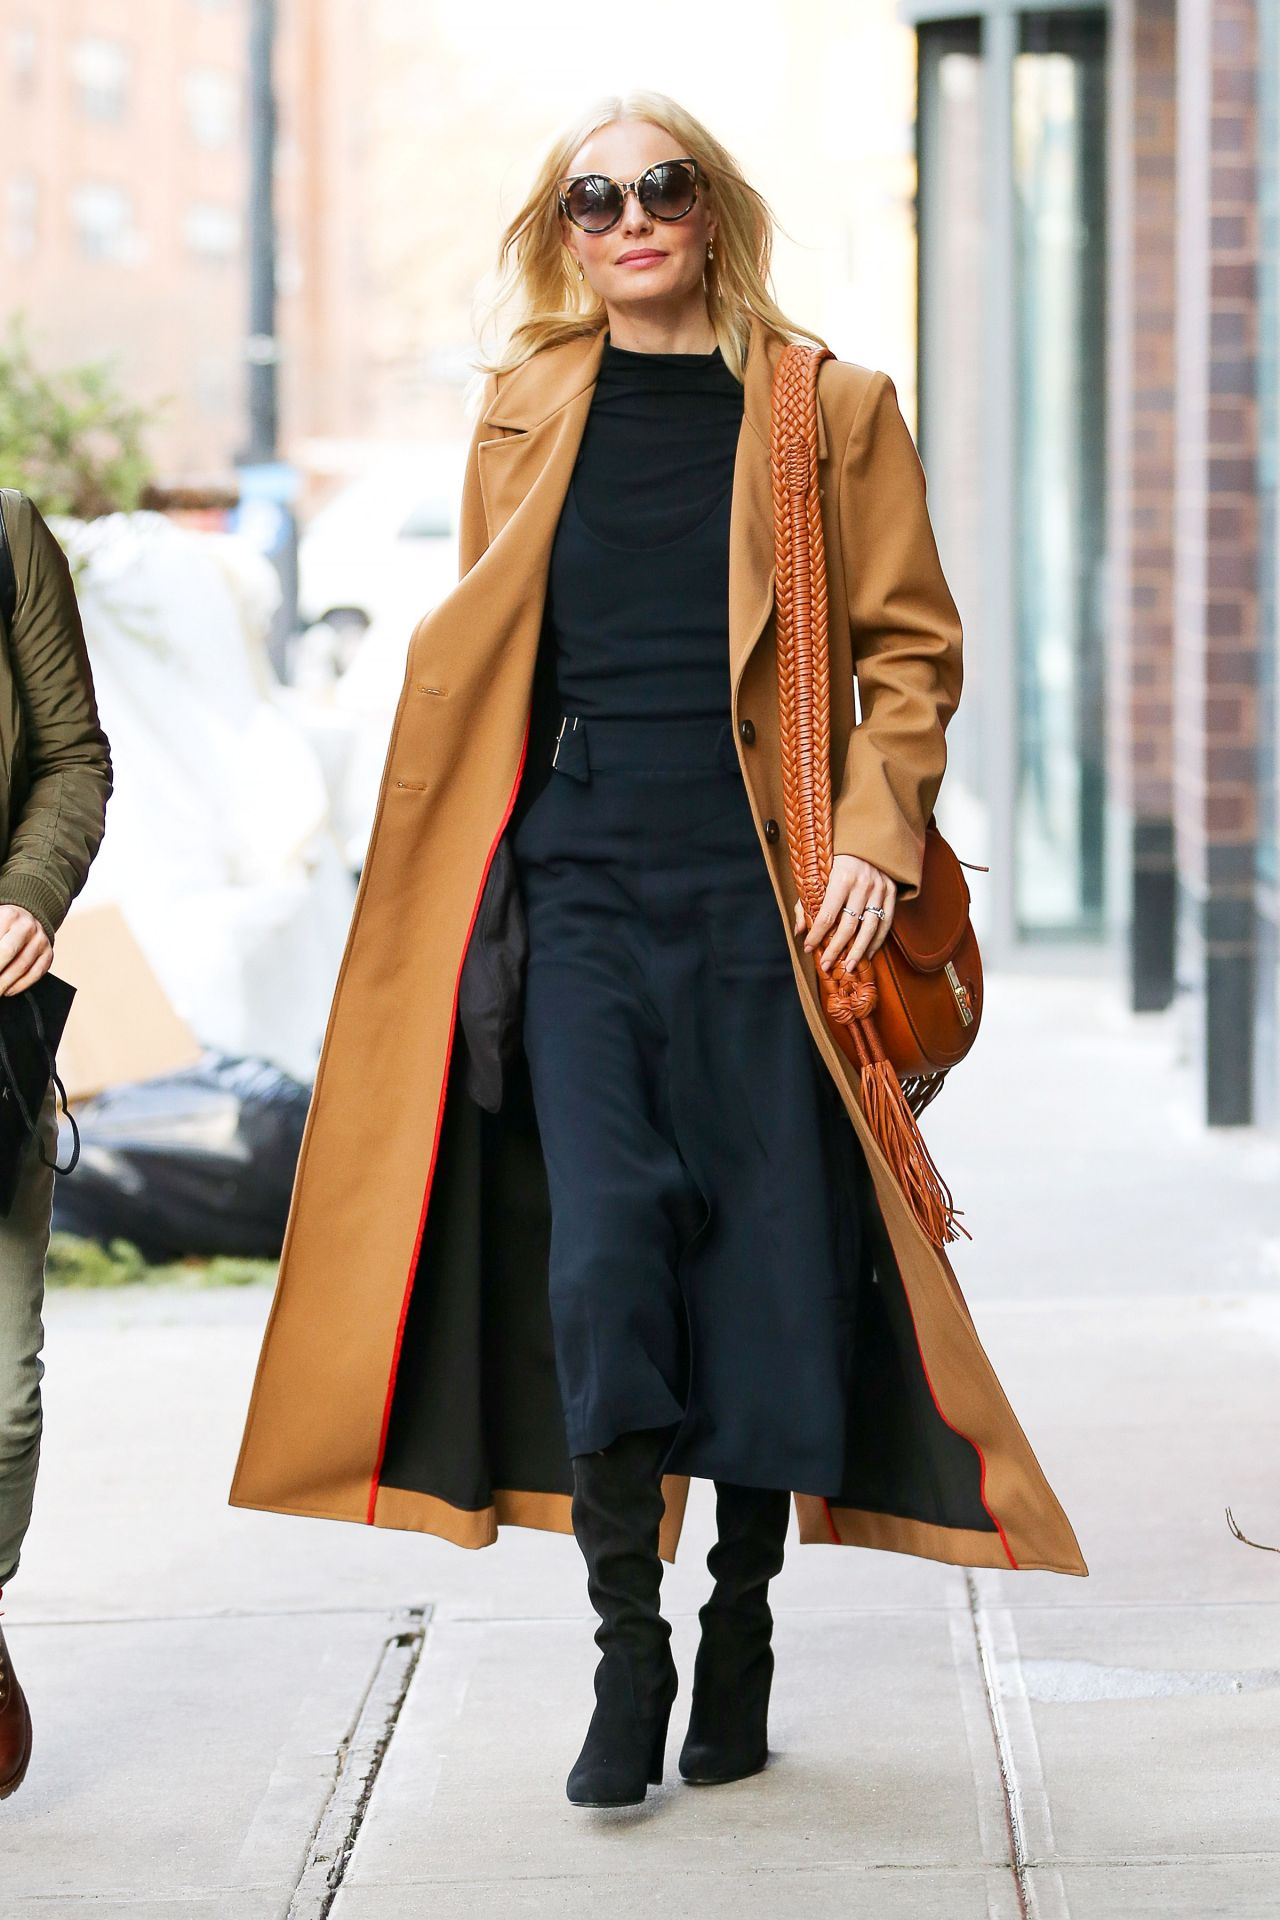 Kate bosworth street fashion out in new york city for Jugendzimmer new york style